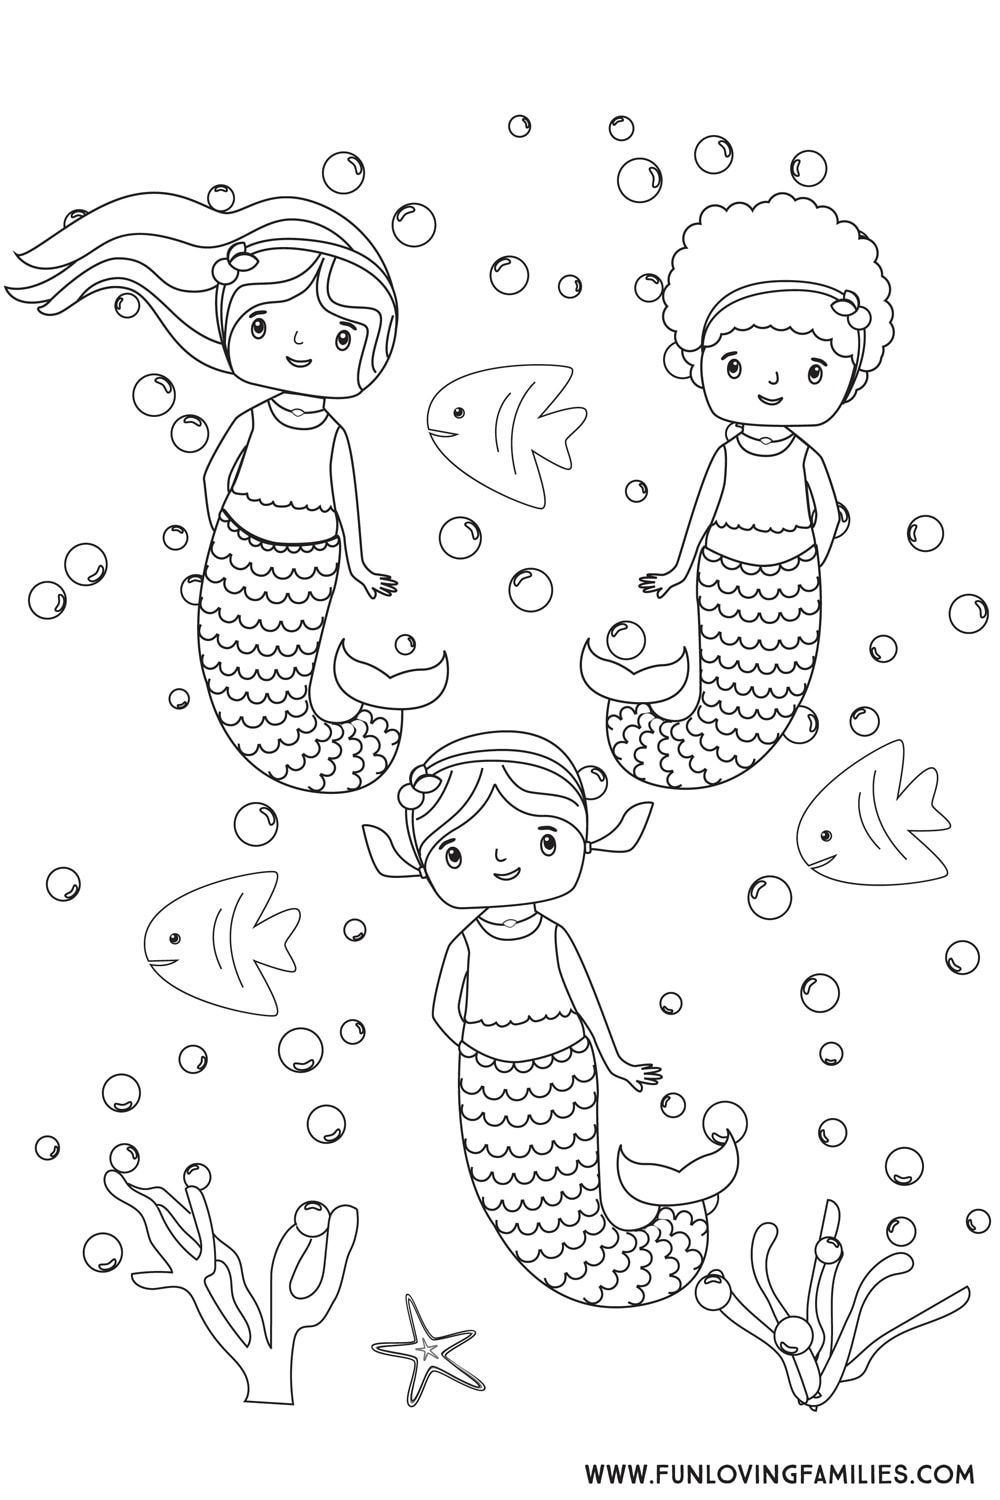 6 Cute Mermaid Coloring Pages For Kids Free Printables Mermaid Coloring Pages Mermaid Coloring Printables Free Kids